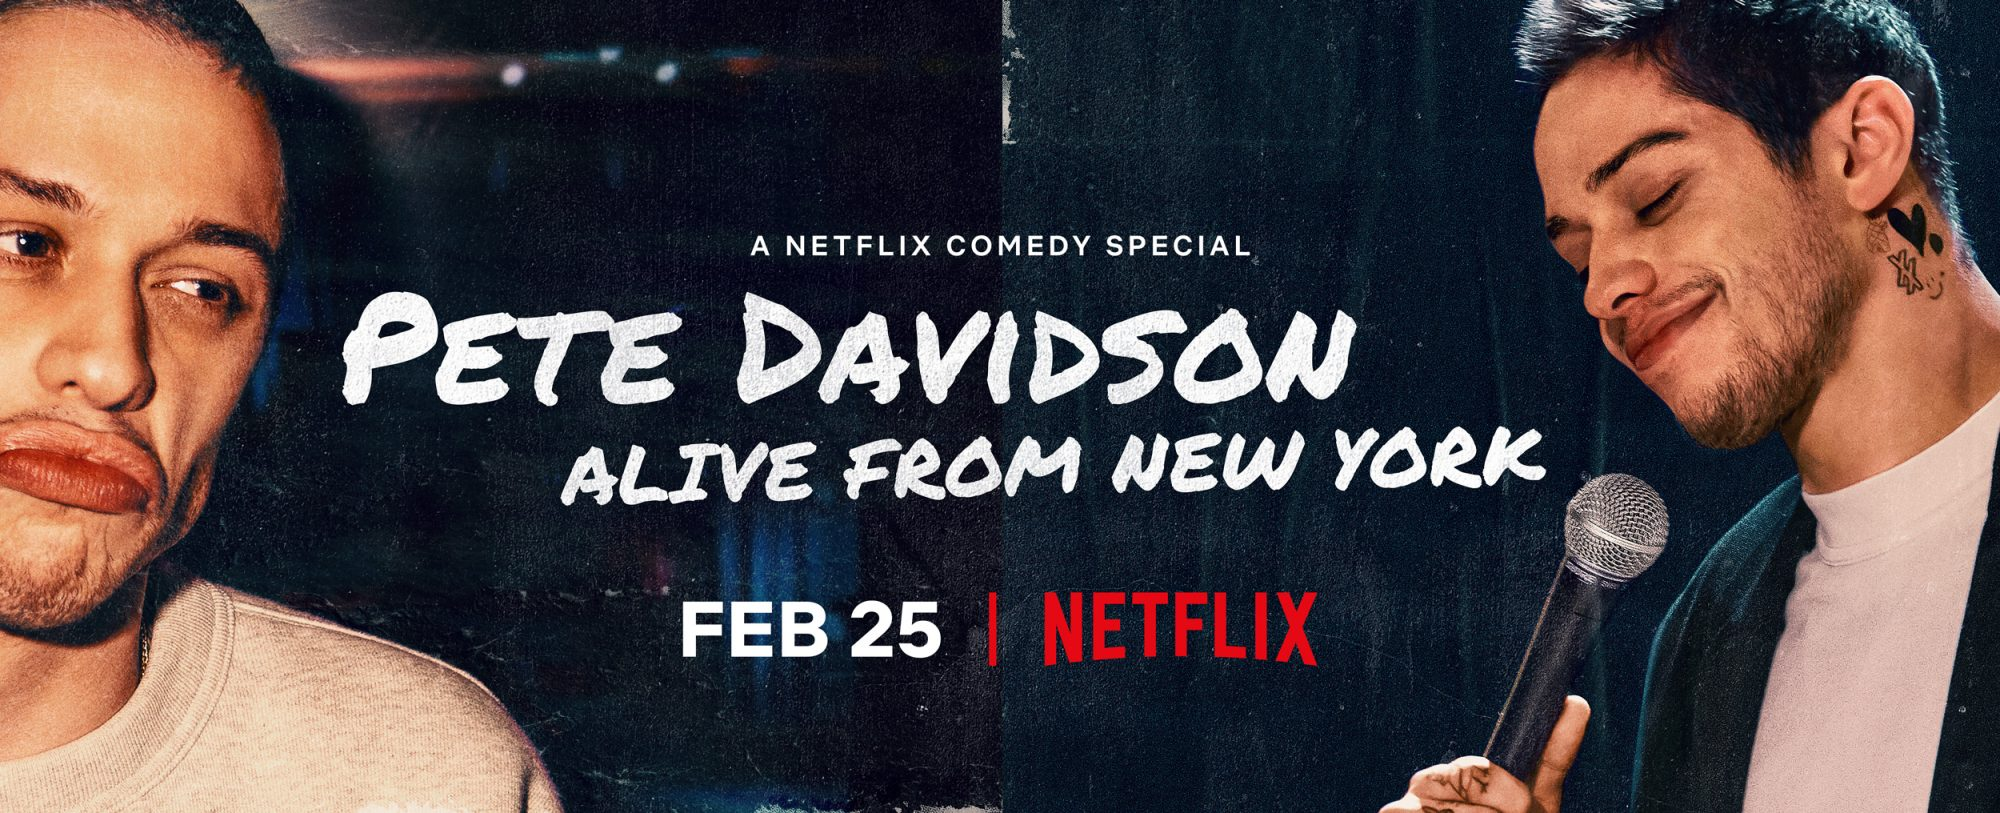 Pete Davidson Will Star in New Netflix Comedy Special — Watch the Trailer